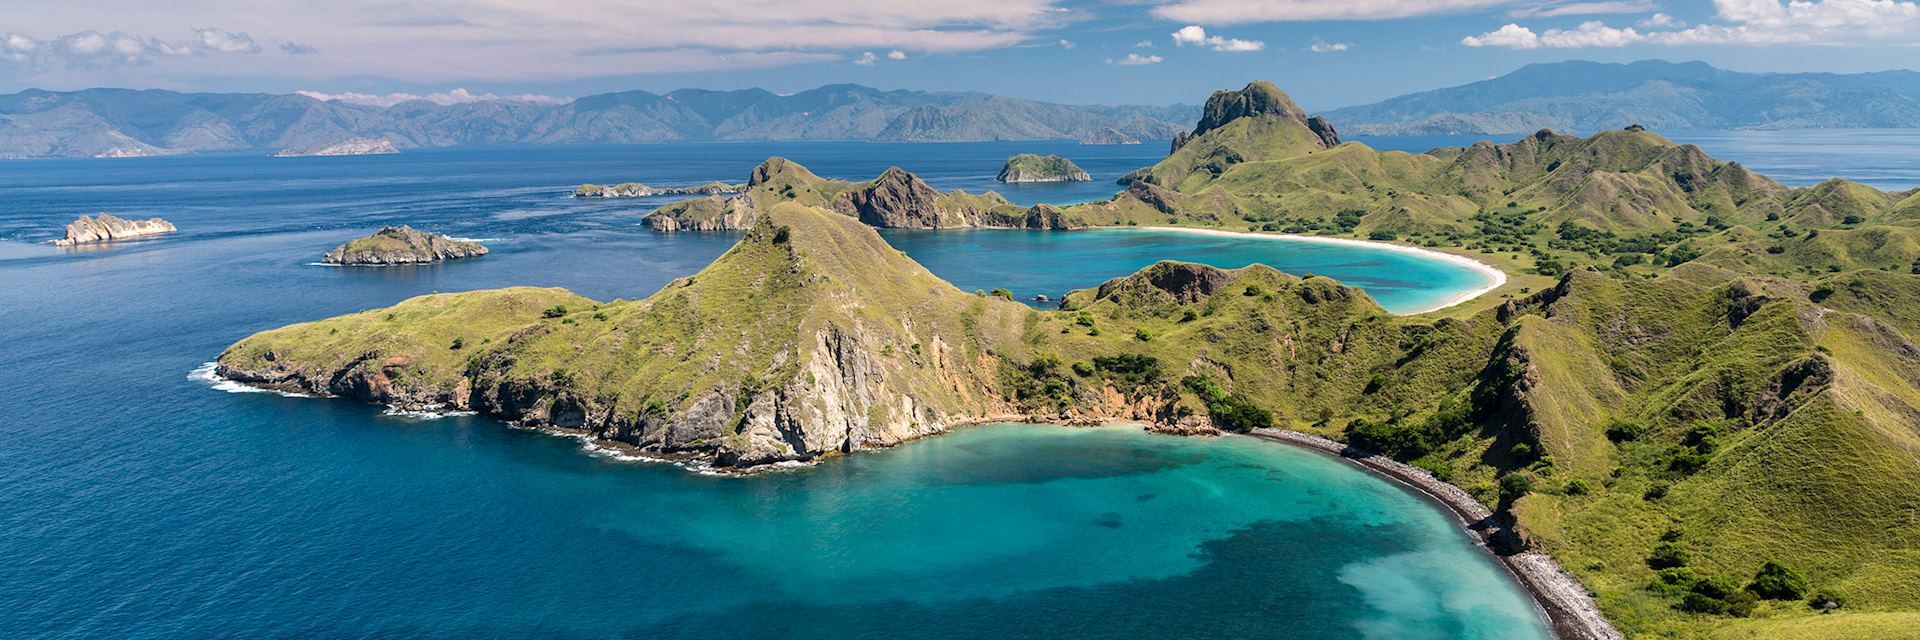 Komodo National Park, Flores Island, Indonesia